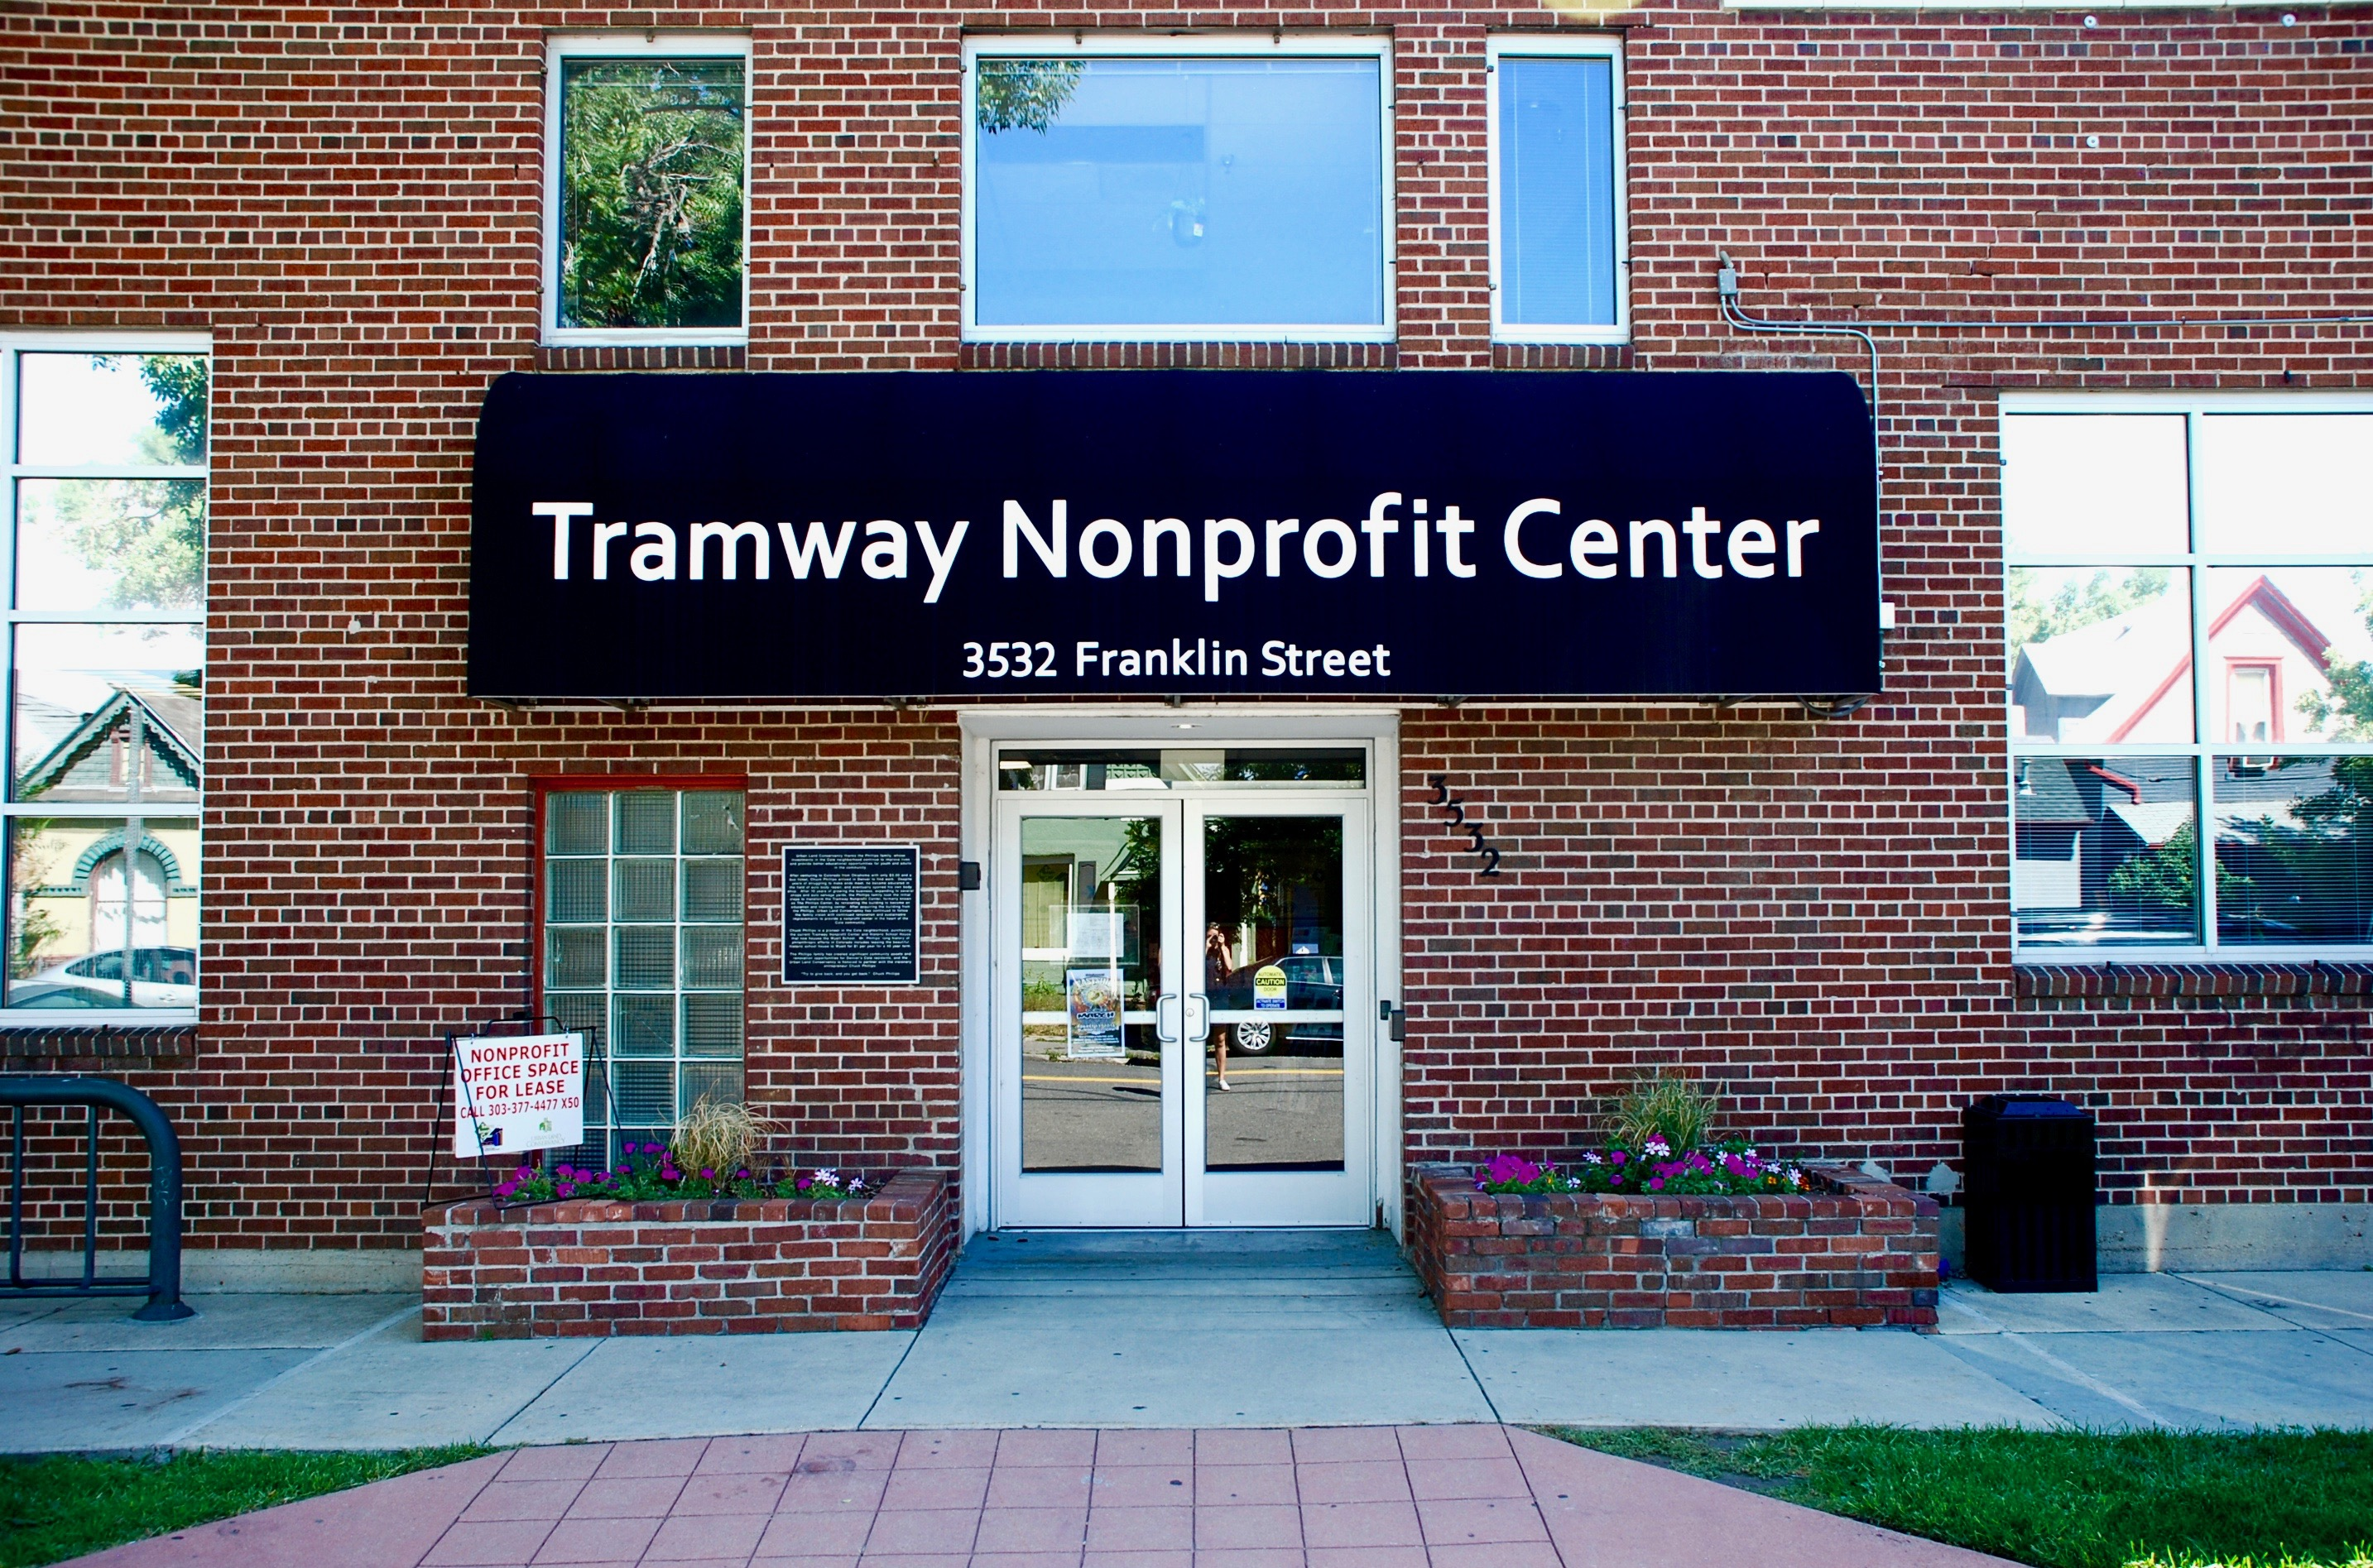 Tramway Nonprofit Center